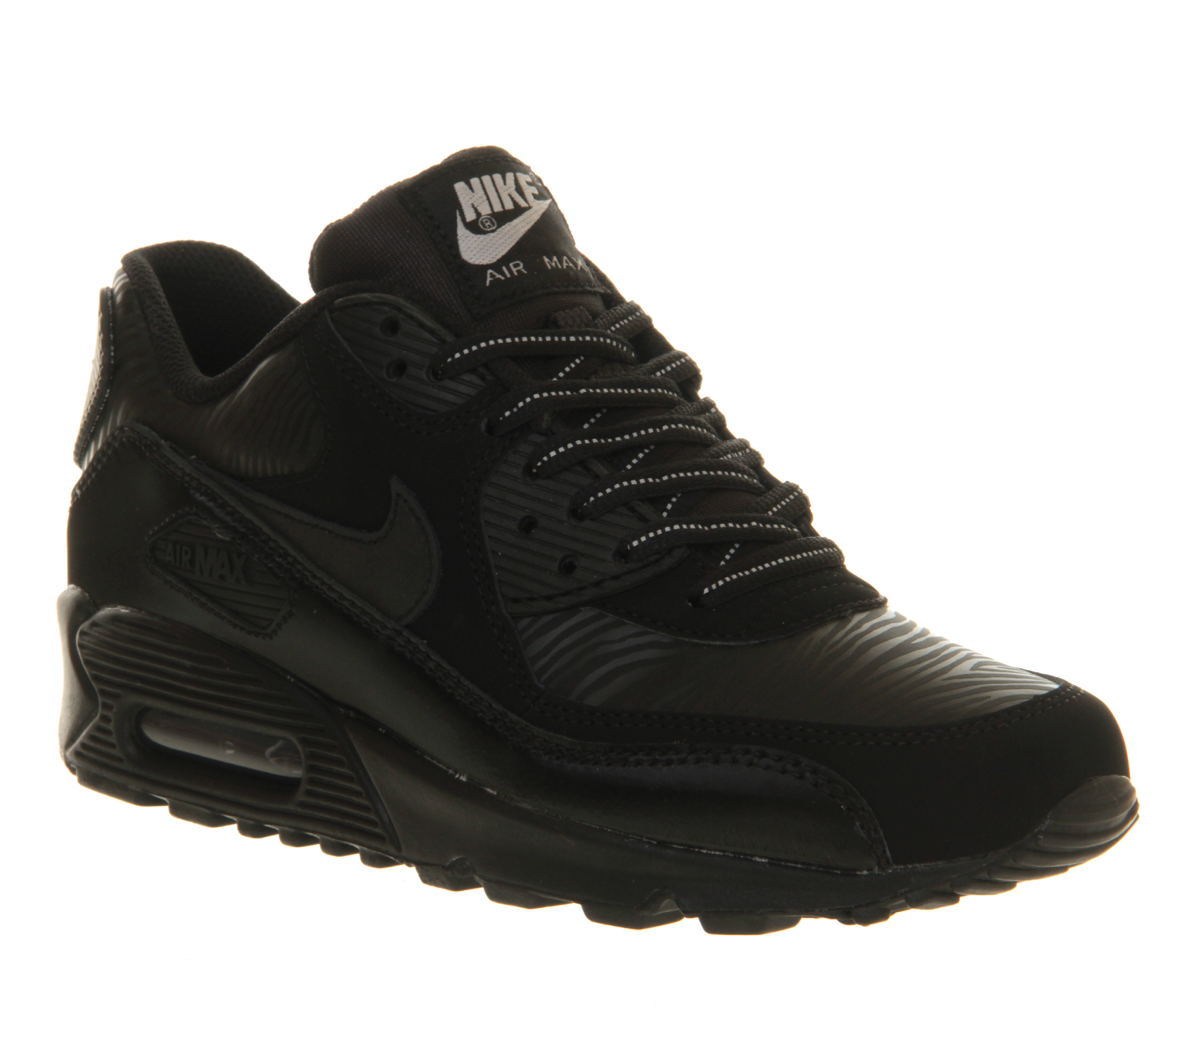 nike air max 90 gs in black lyst. Black Bedroom Furniture Sets. Home Design Ideas